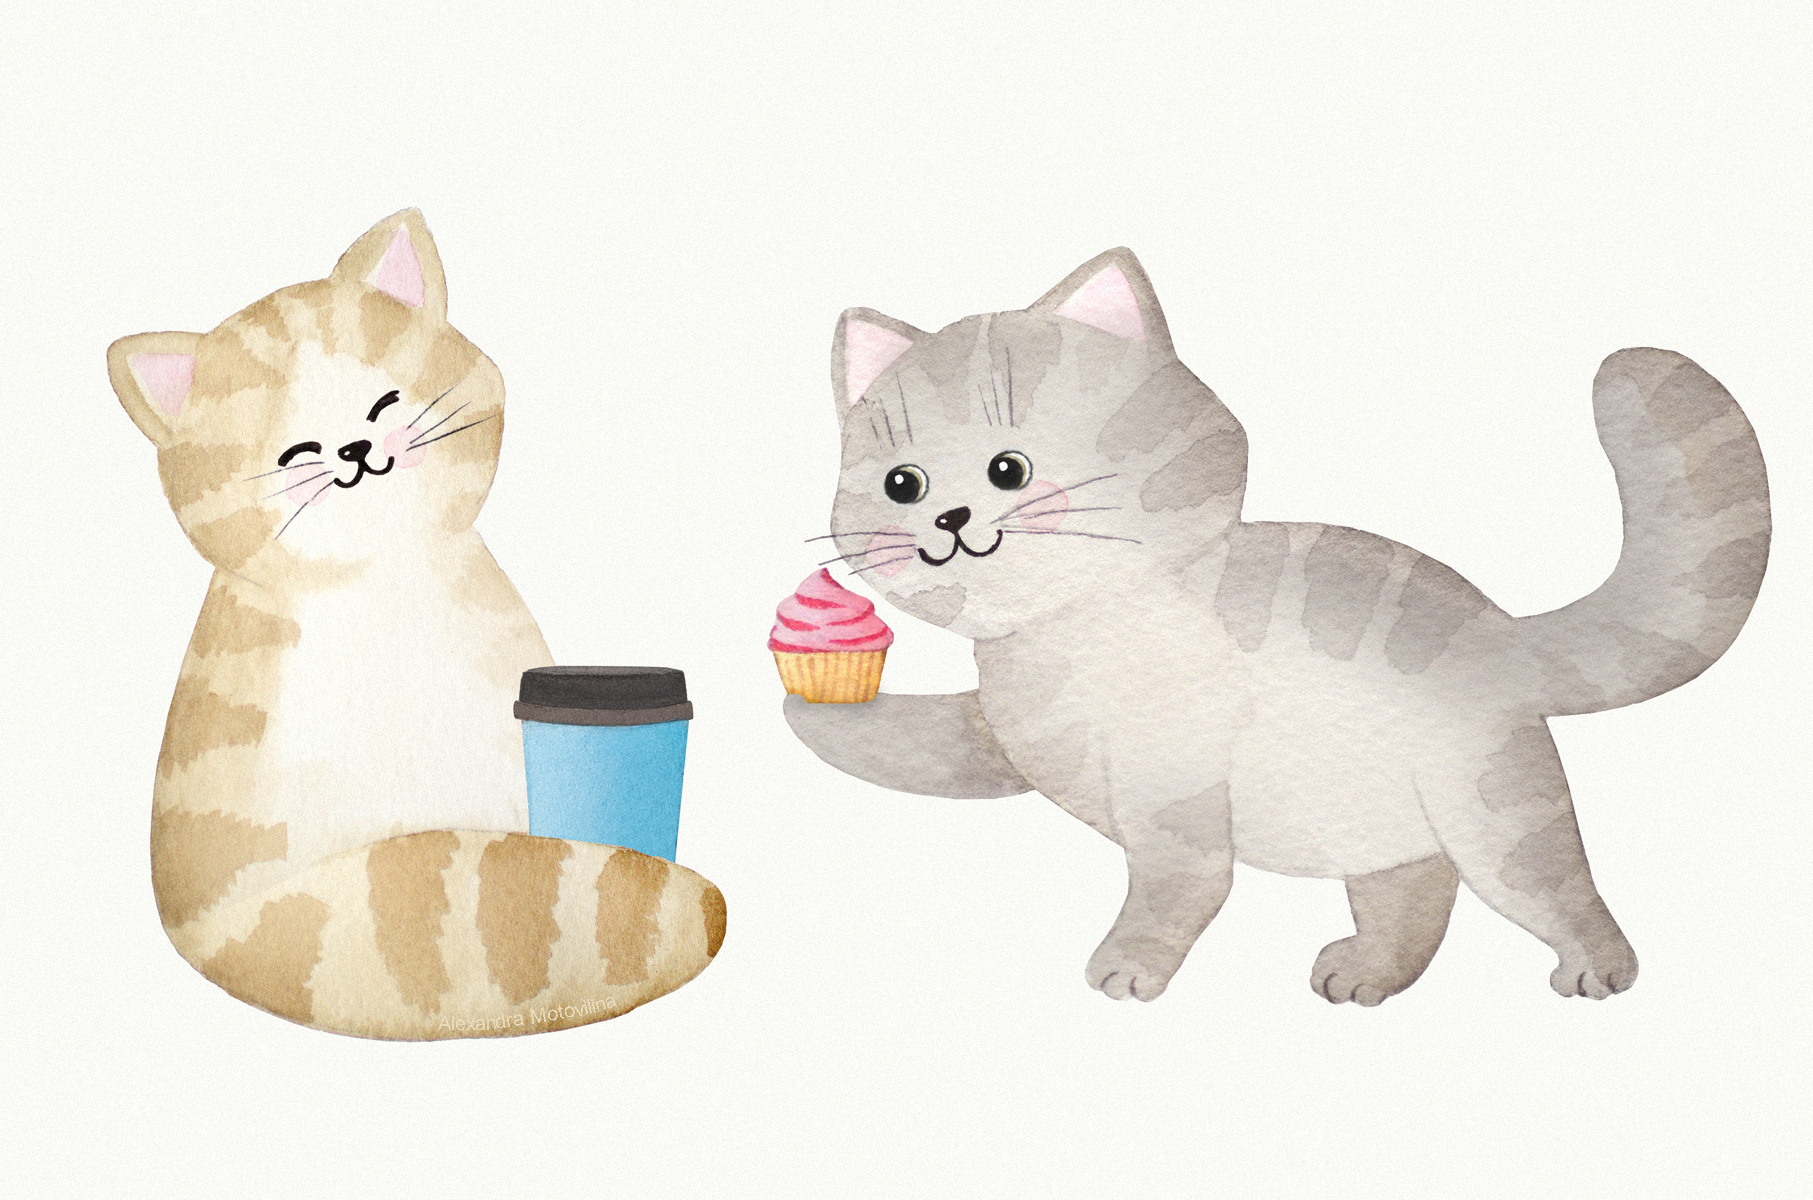 Alexandra-Motovilina_Christies-Bakery_Cute-Cats